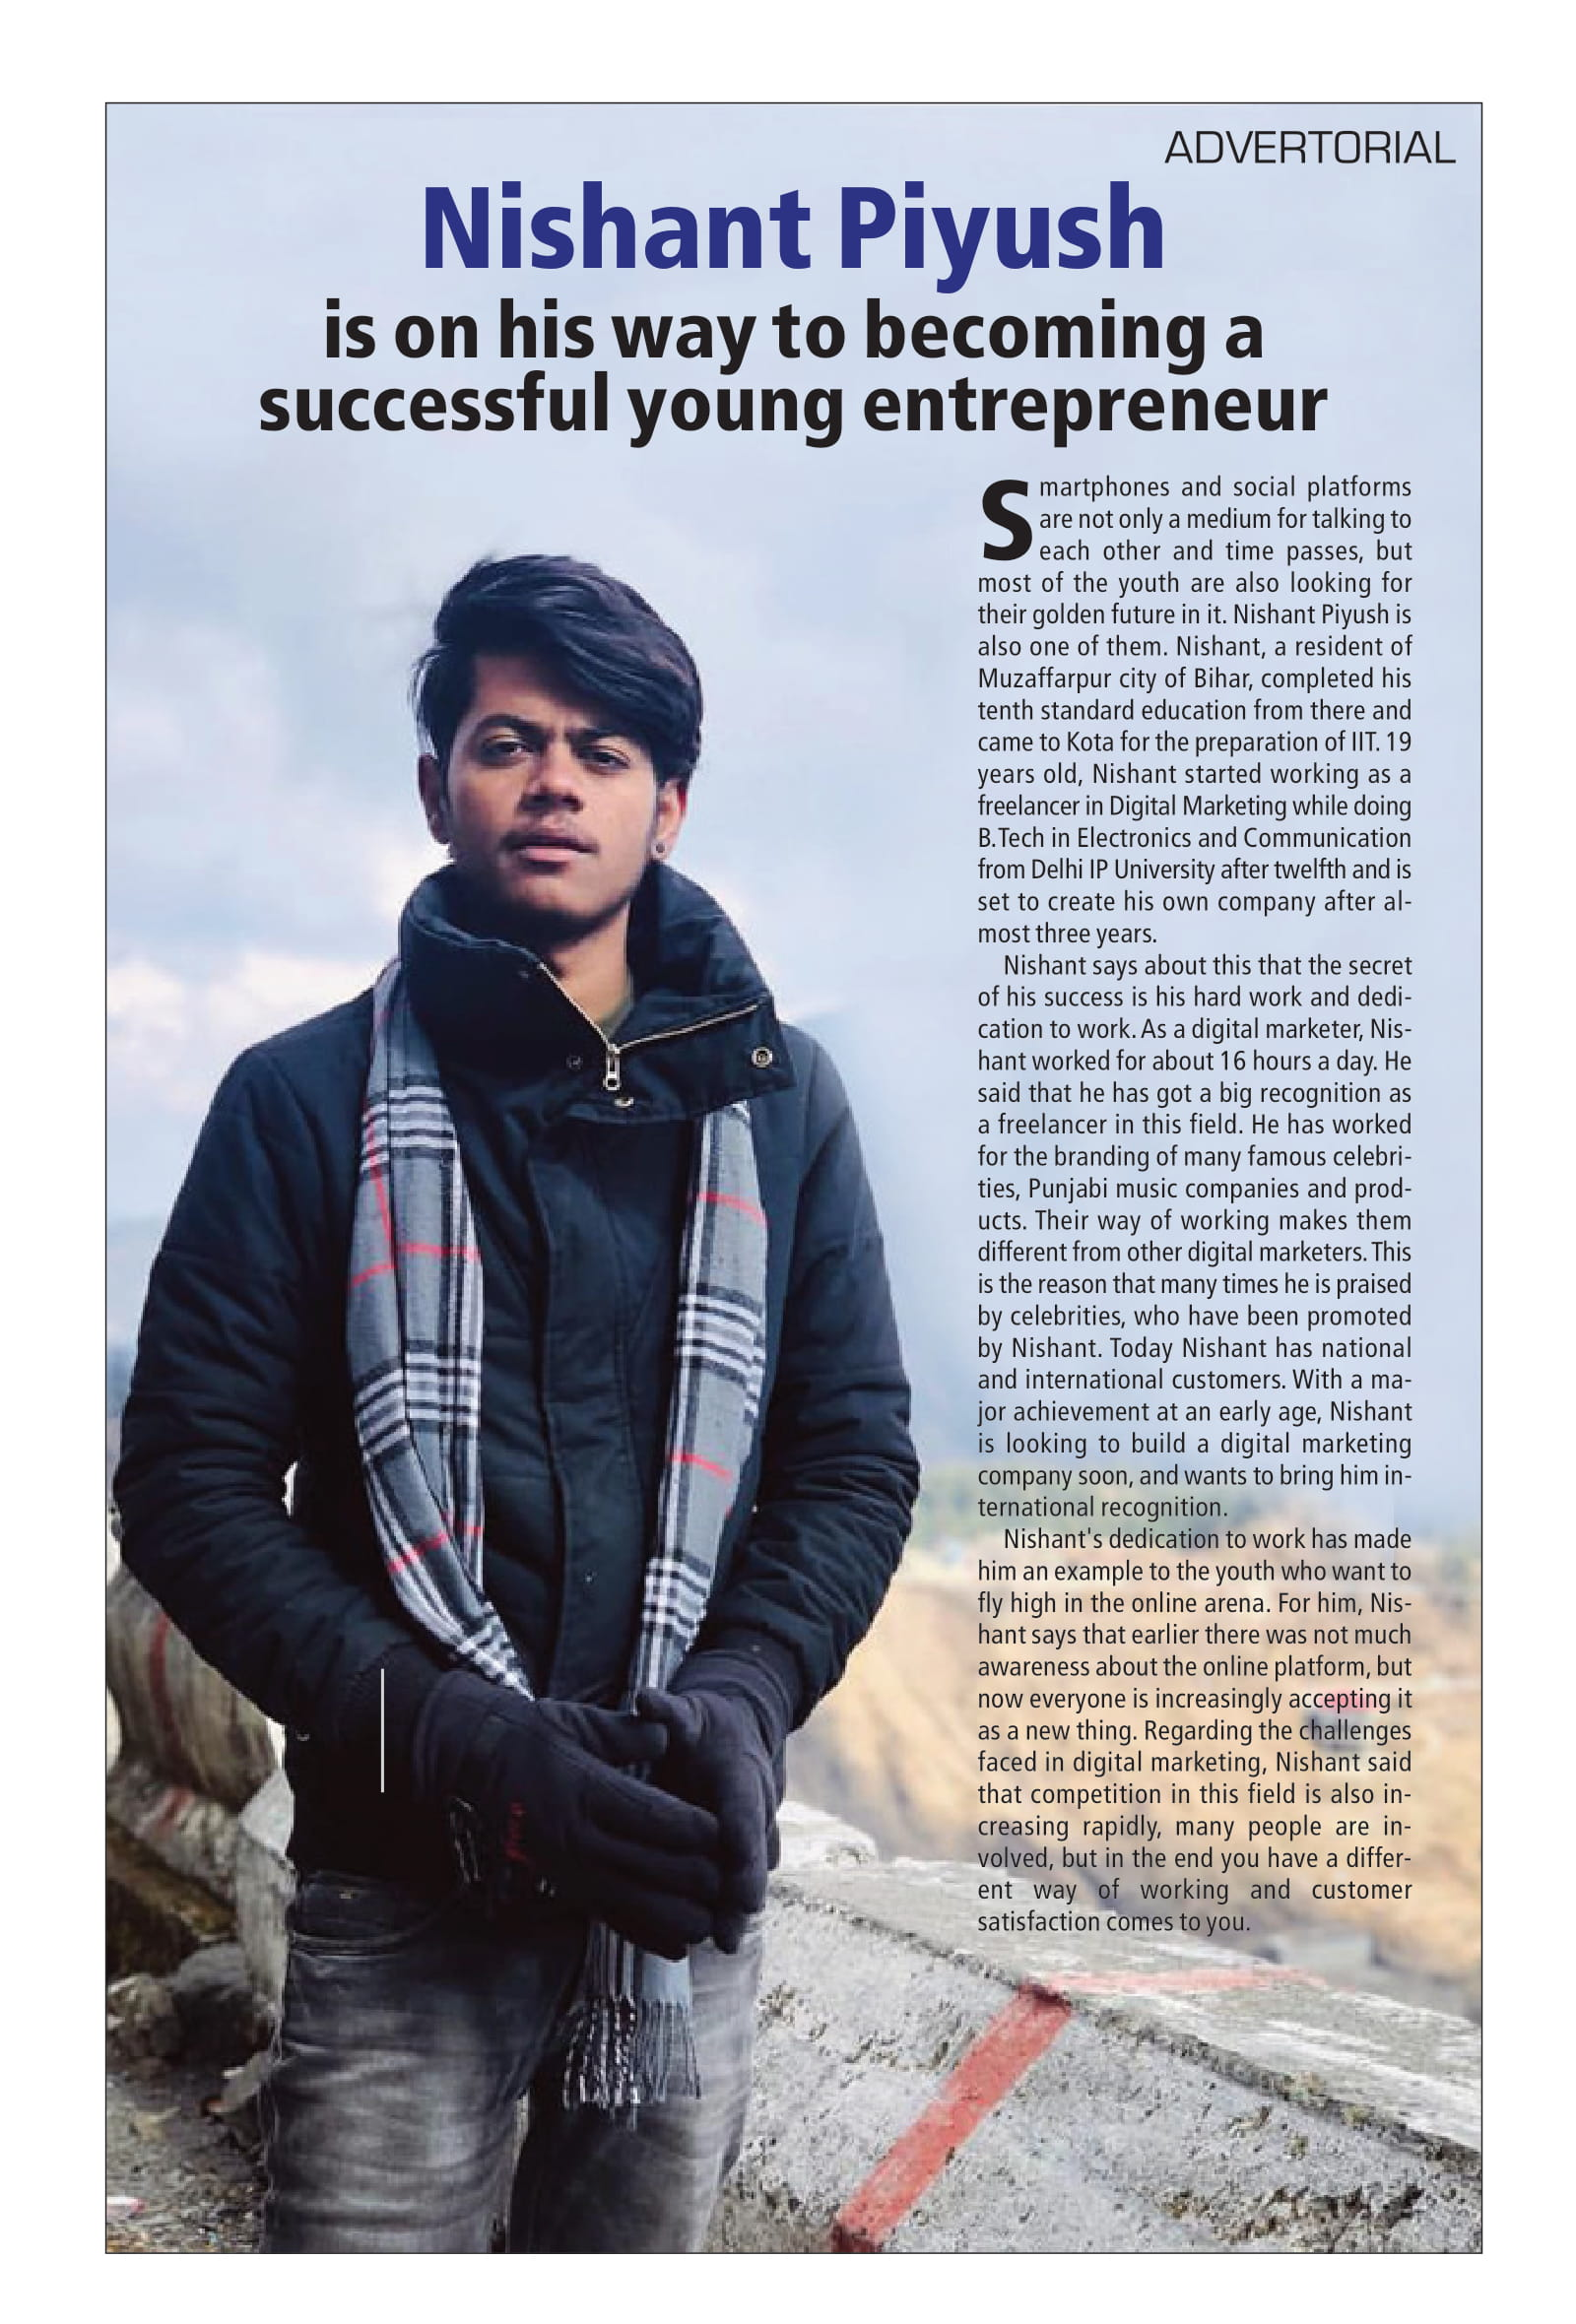 Nishant Piyush is on his way to becoming a successful young entrepreneur